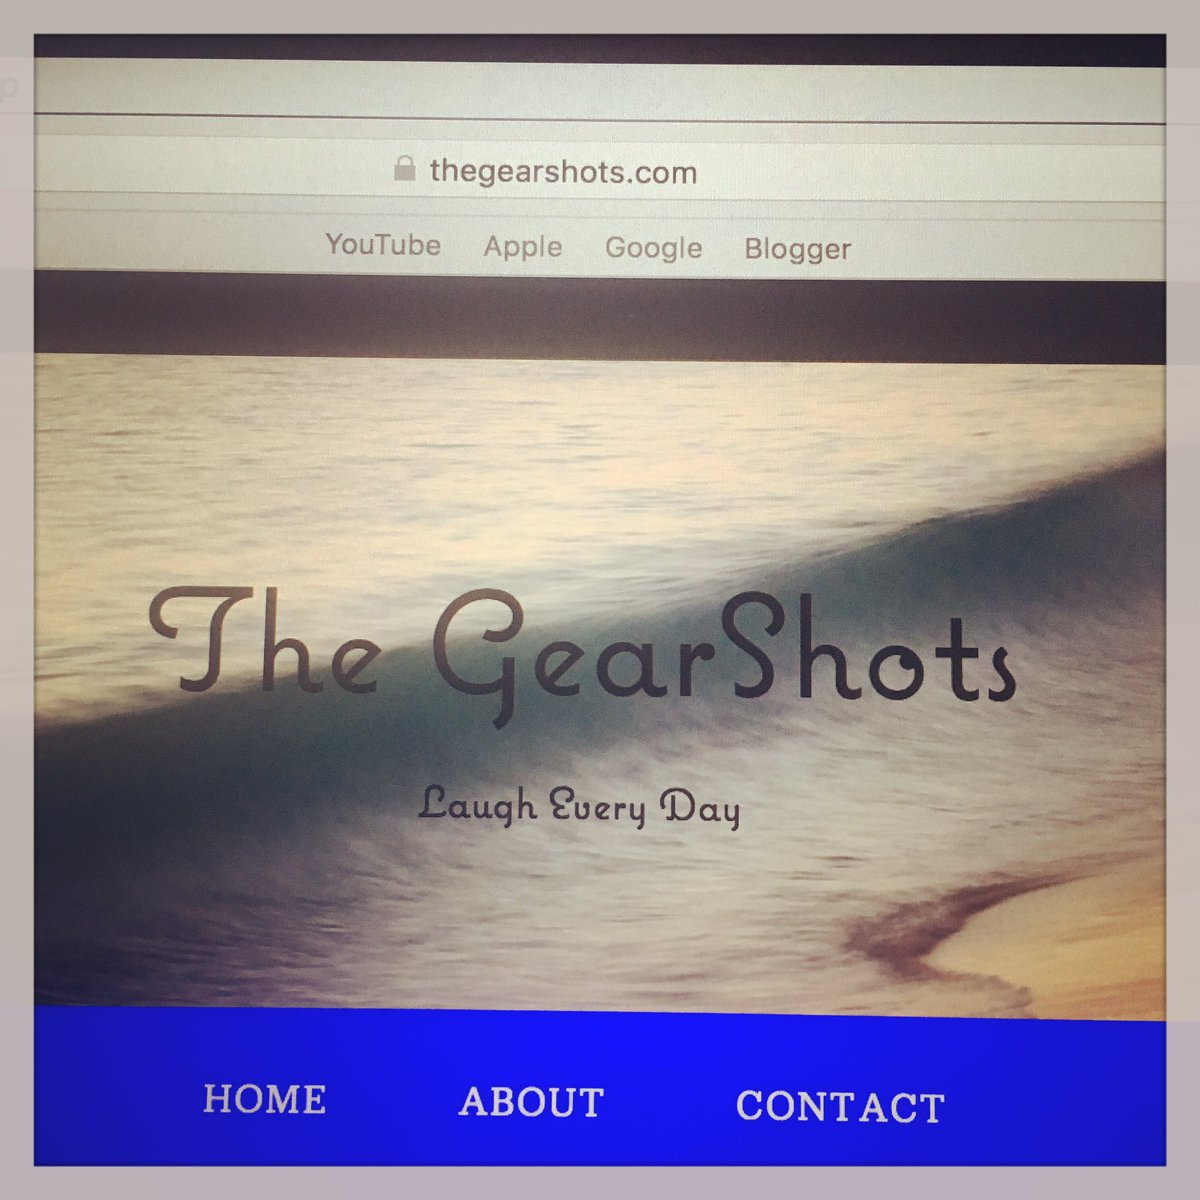 Check out the website we have going now! #thegearshots pic.twitter.com/cMMDK4GOdo